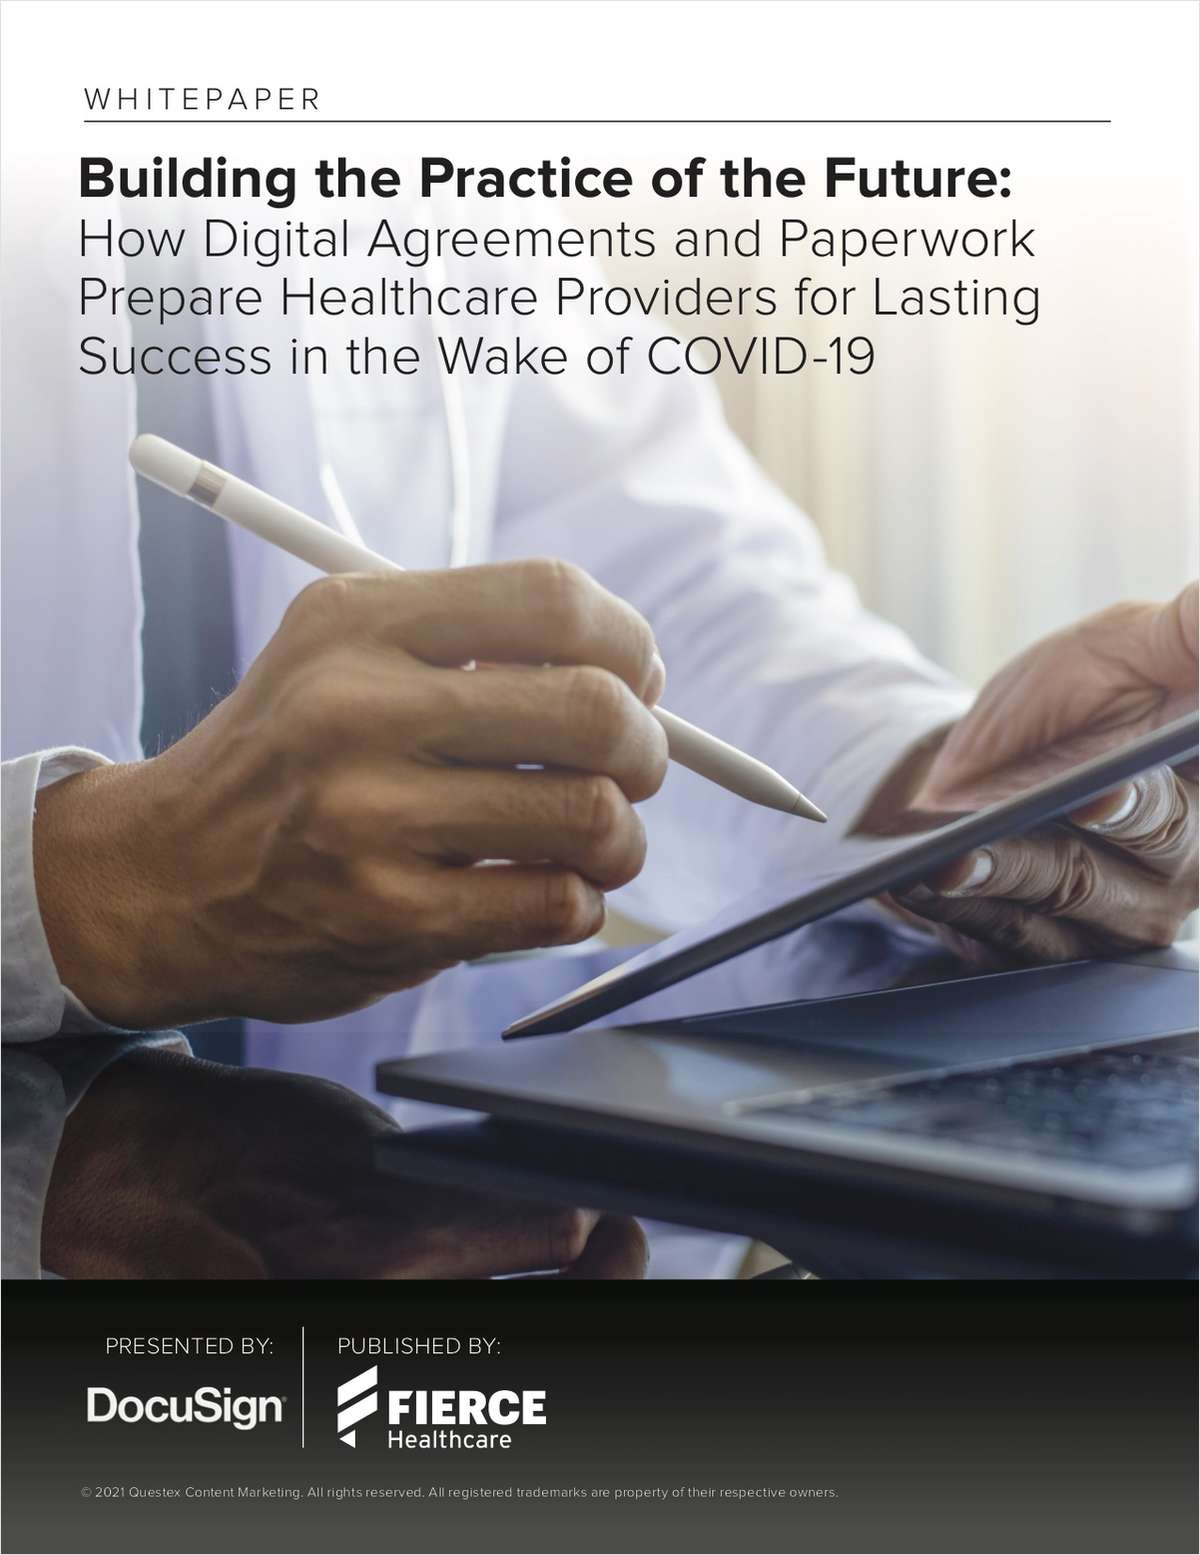 Building the Practice of the Future: How Digital Agreements and Paperwork Prepare Healthcare Providers for Lasting Success in the Wake of COVID-19